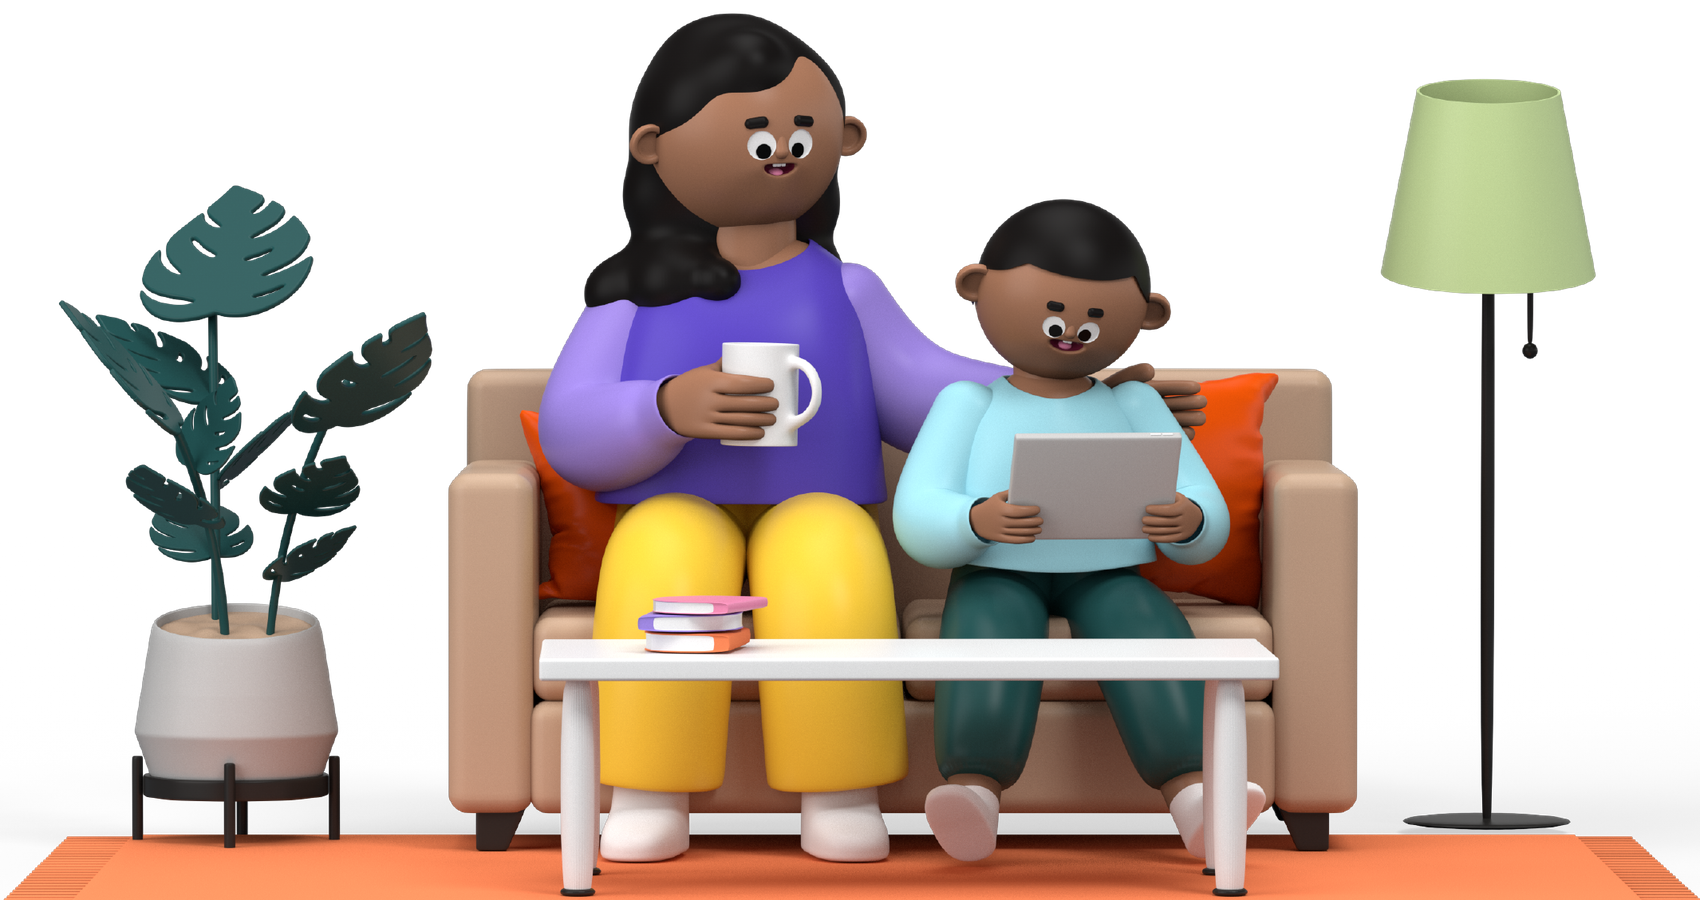 Animation of a mother and her son sitting on a couch using a tablet.